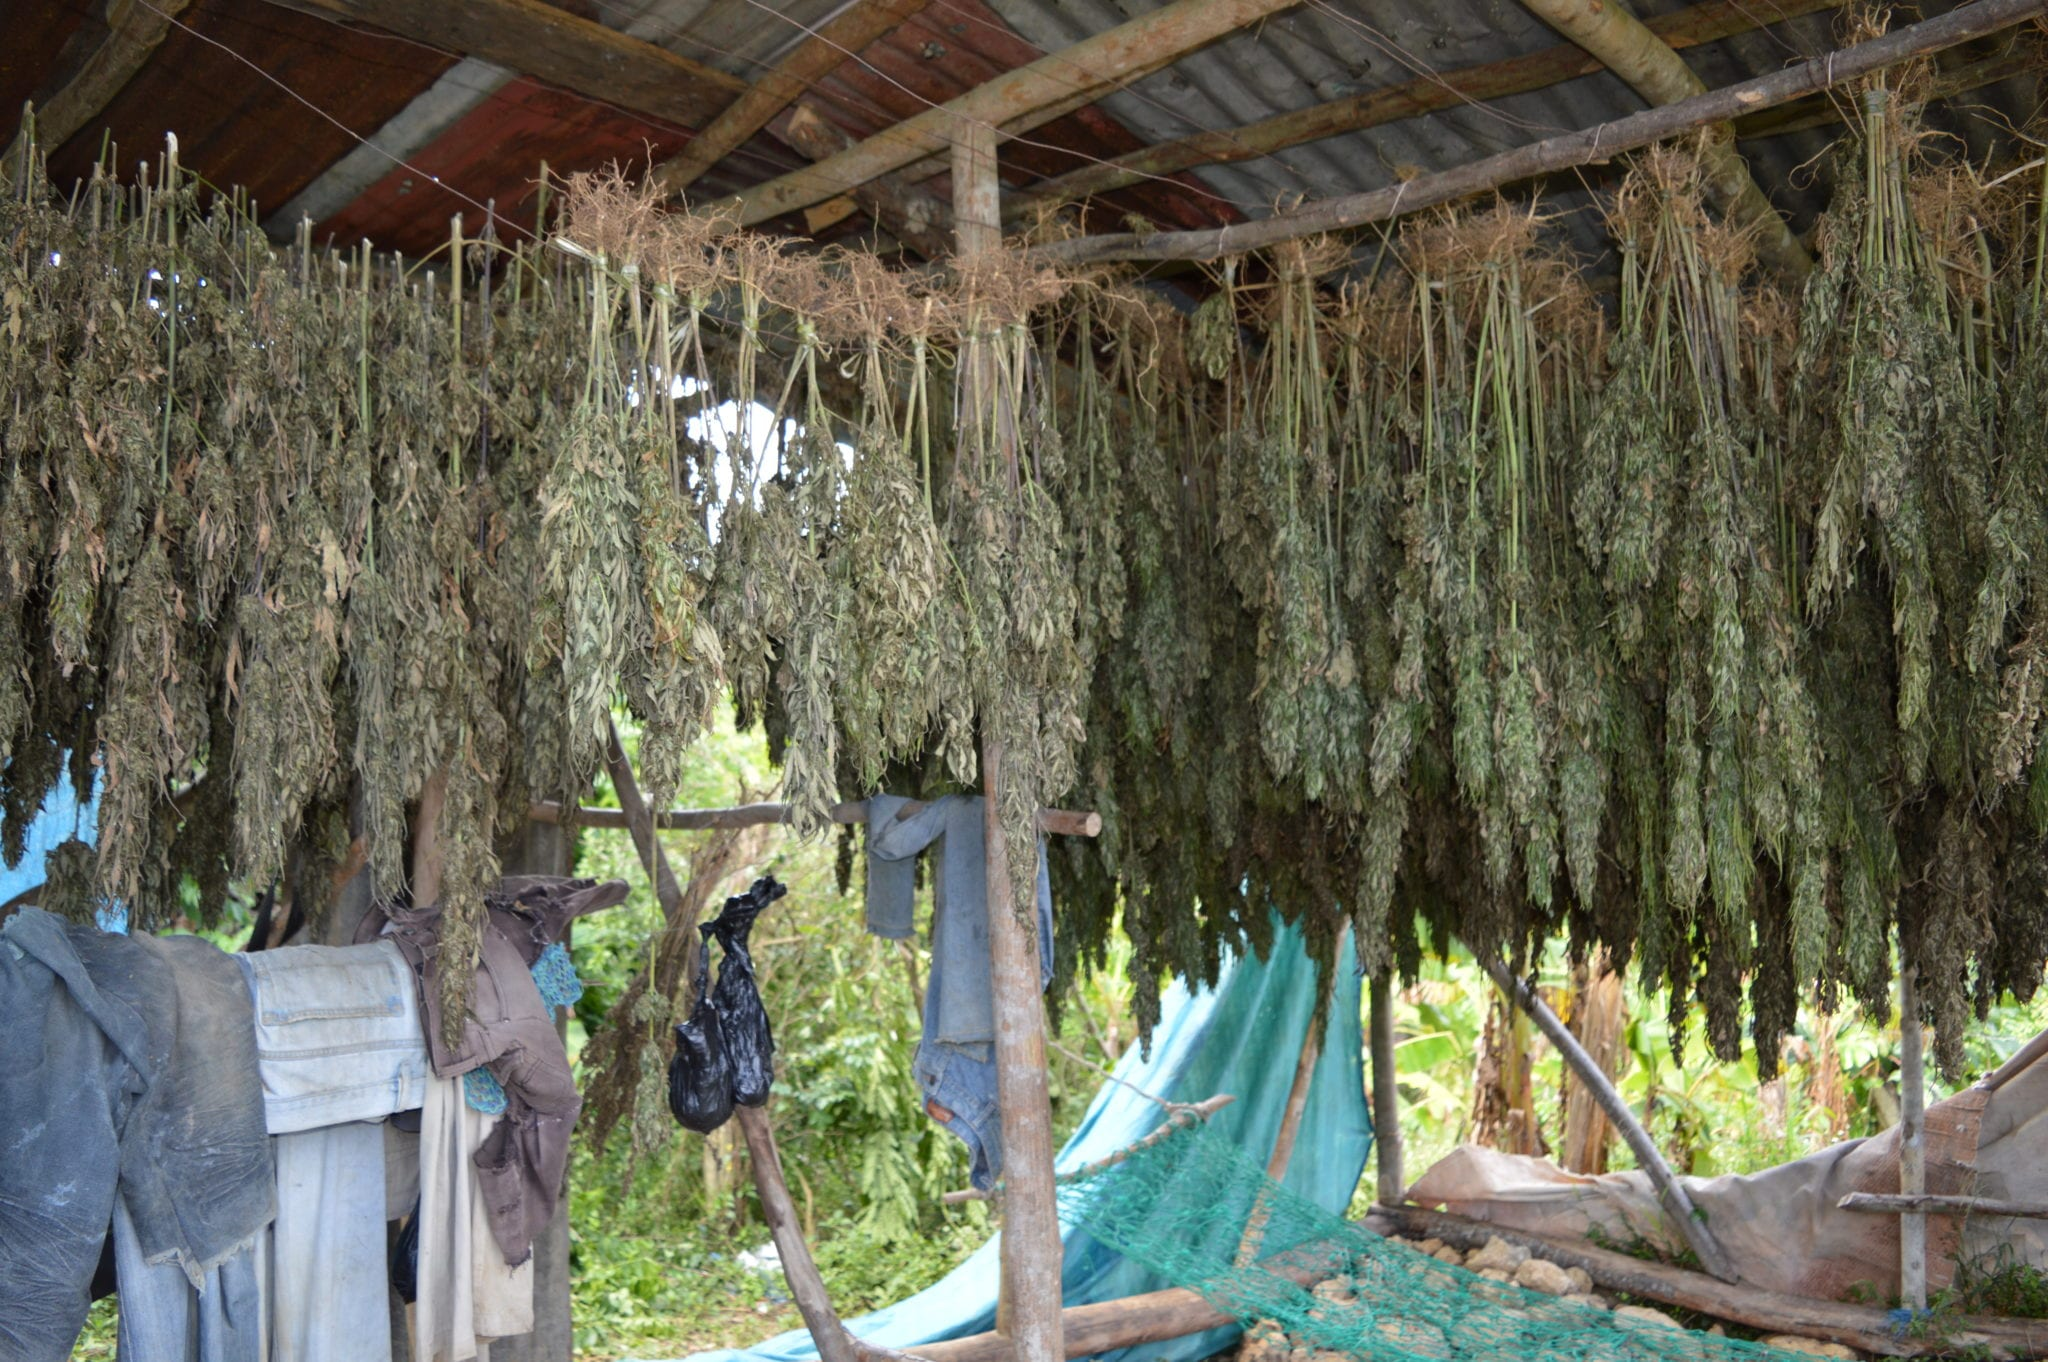 Jamaica helps illicit small-time cannabis farmers transition to legal market